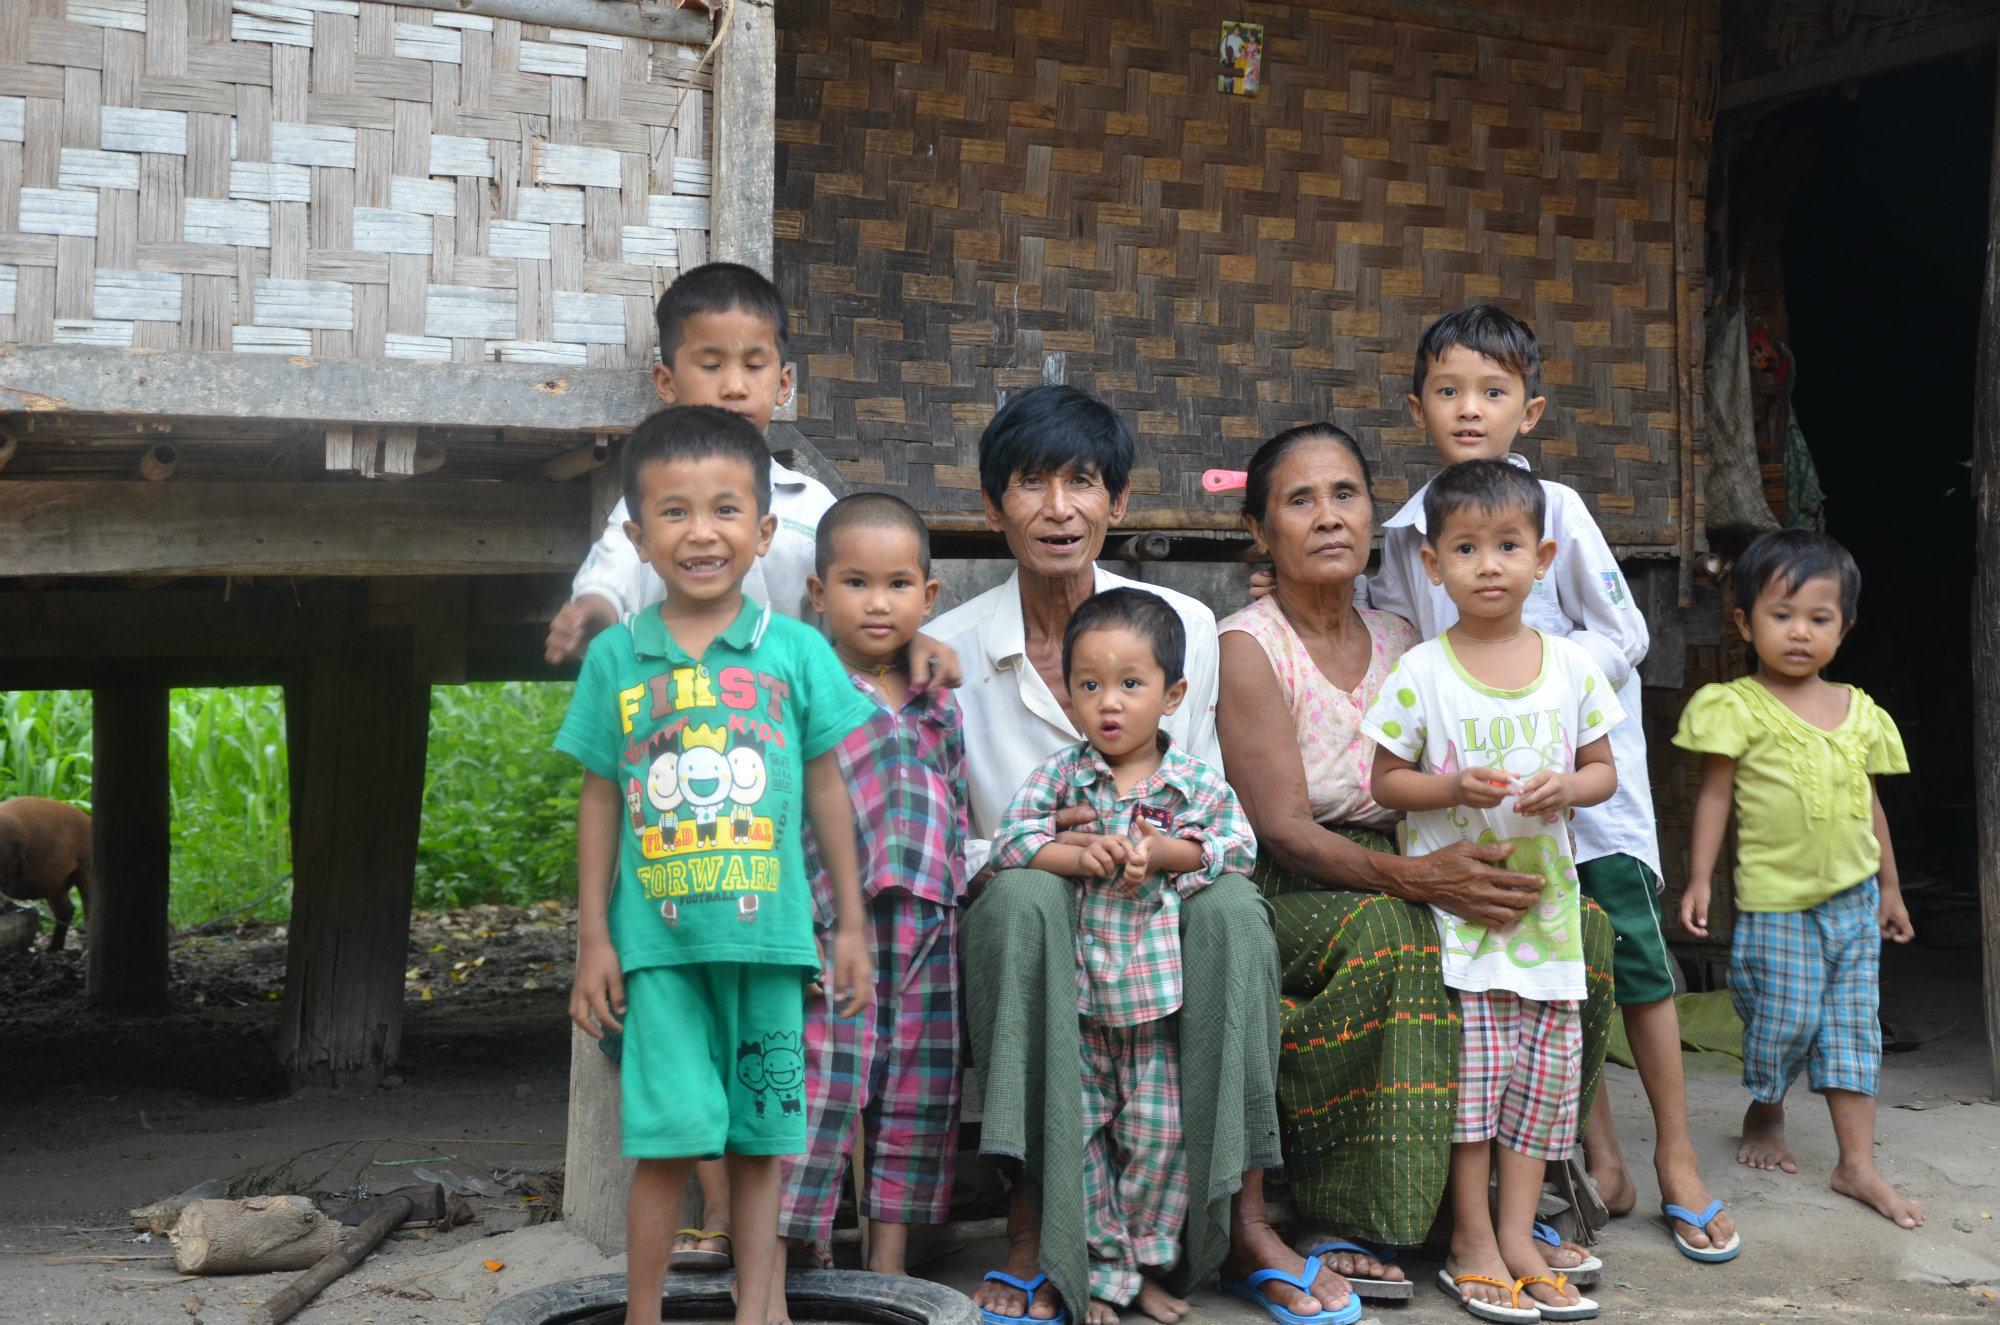 poor family Poor family in cambodia - mrssokhonavi - duration: 7:28 kakada tuon 2,003 views 7:28 poor family of 17 pleads for help - duration: 1:50.